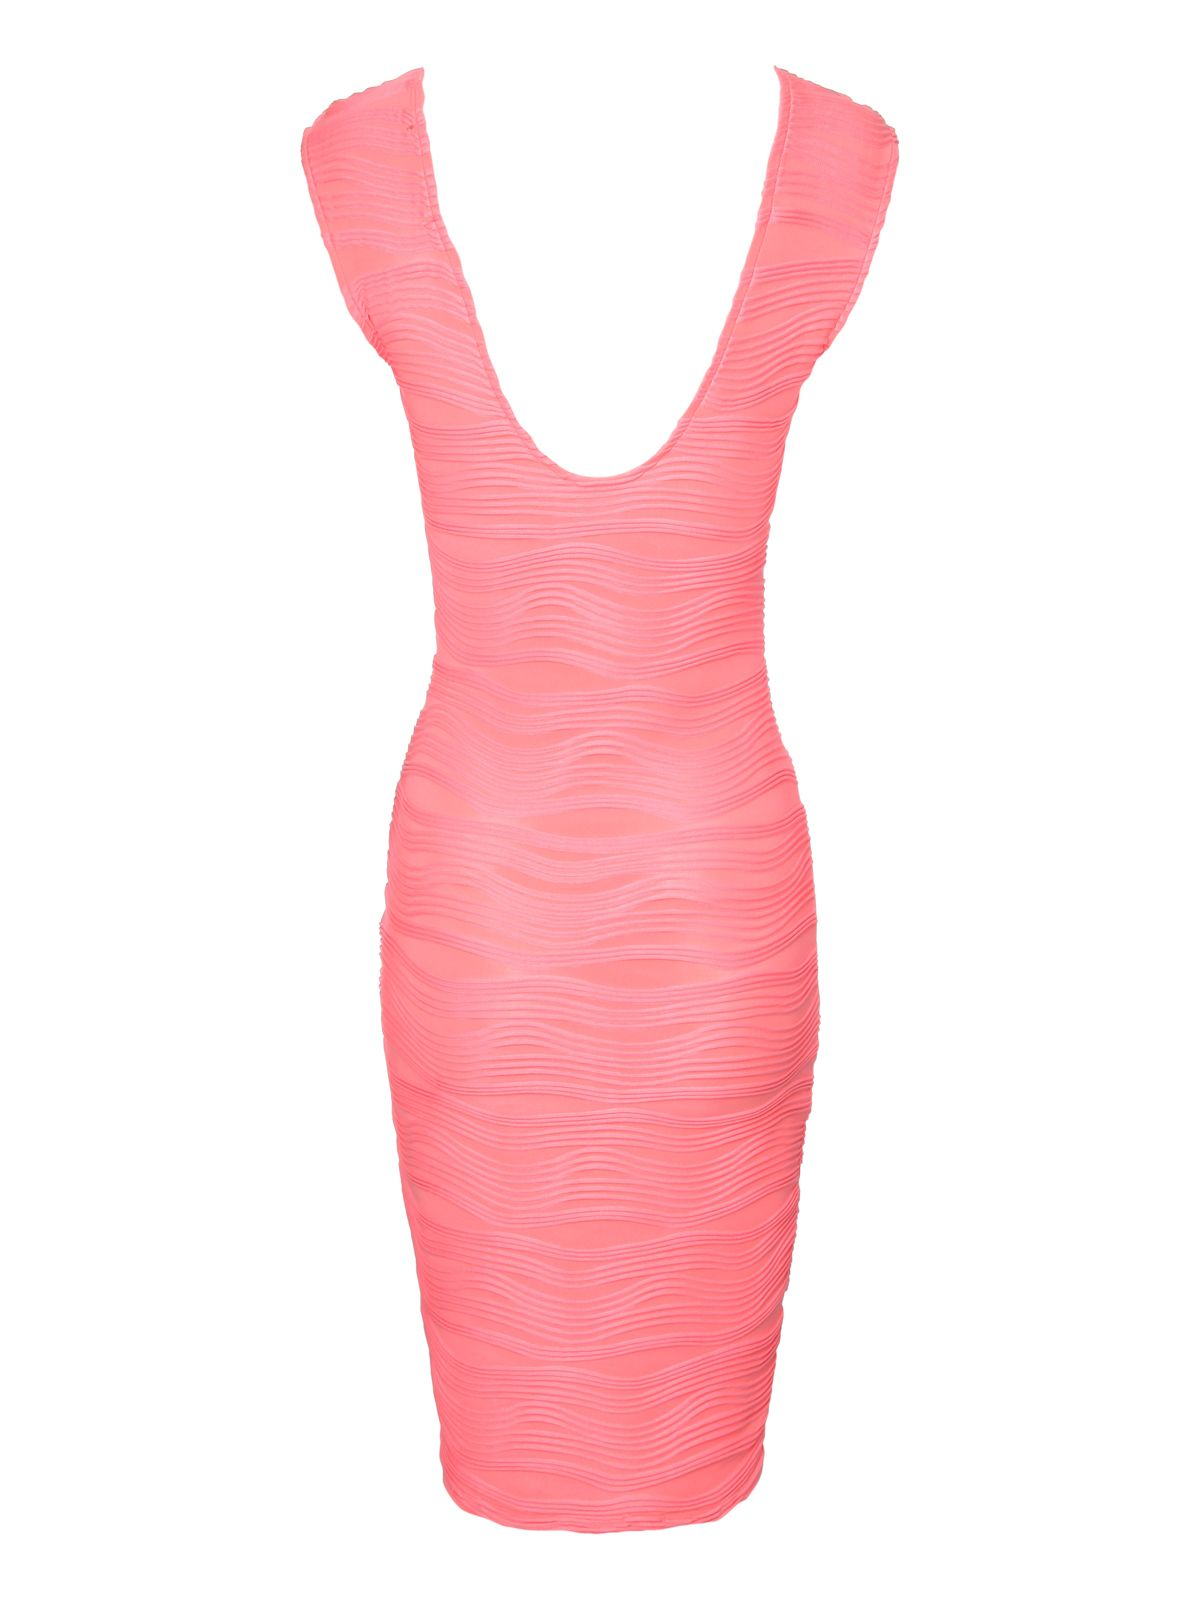 Ripple bodycon dress